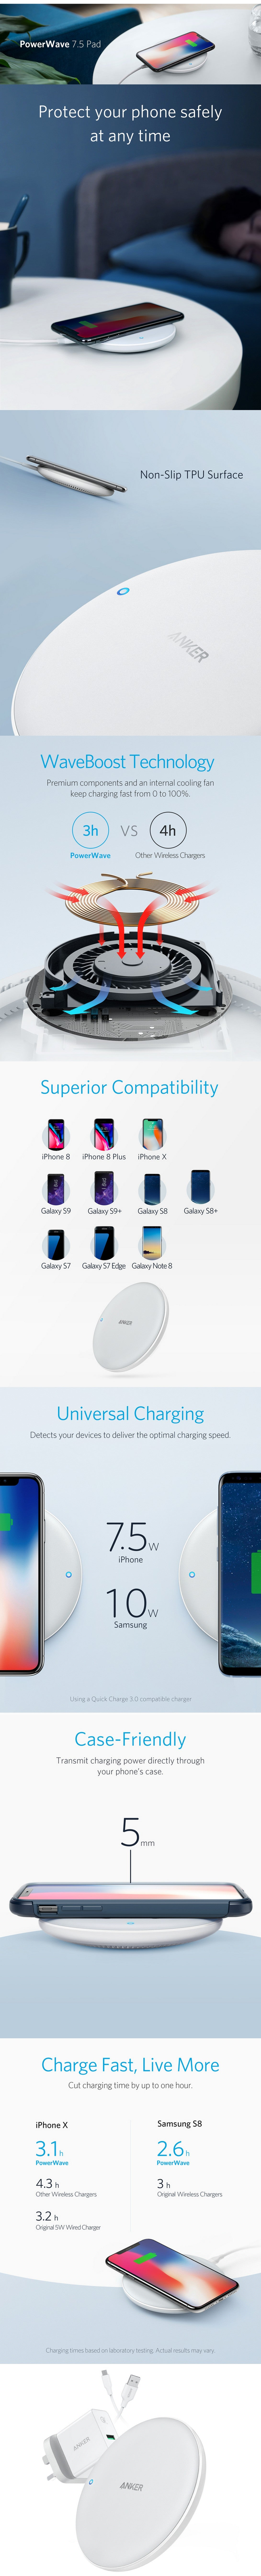 anker-powerwave-7-5-fast-wireless-charging-pad